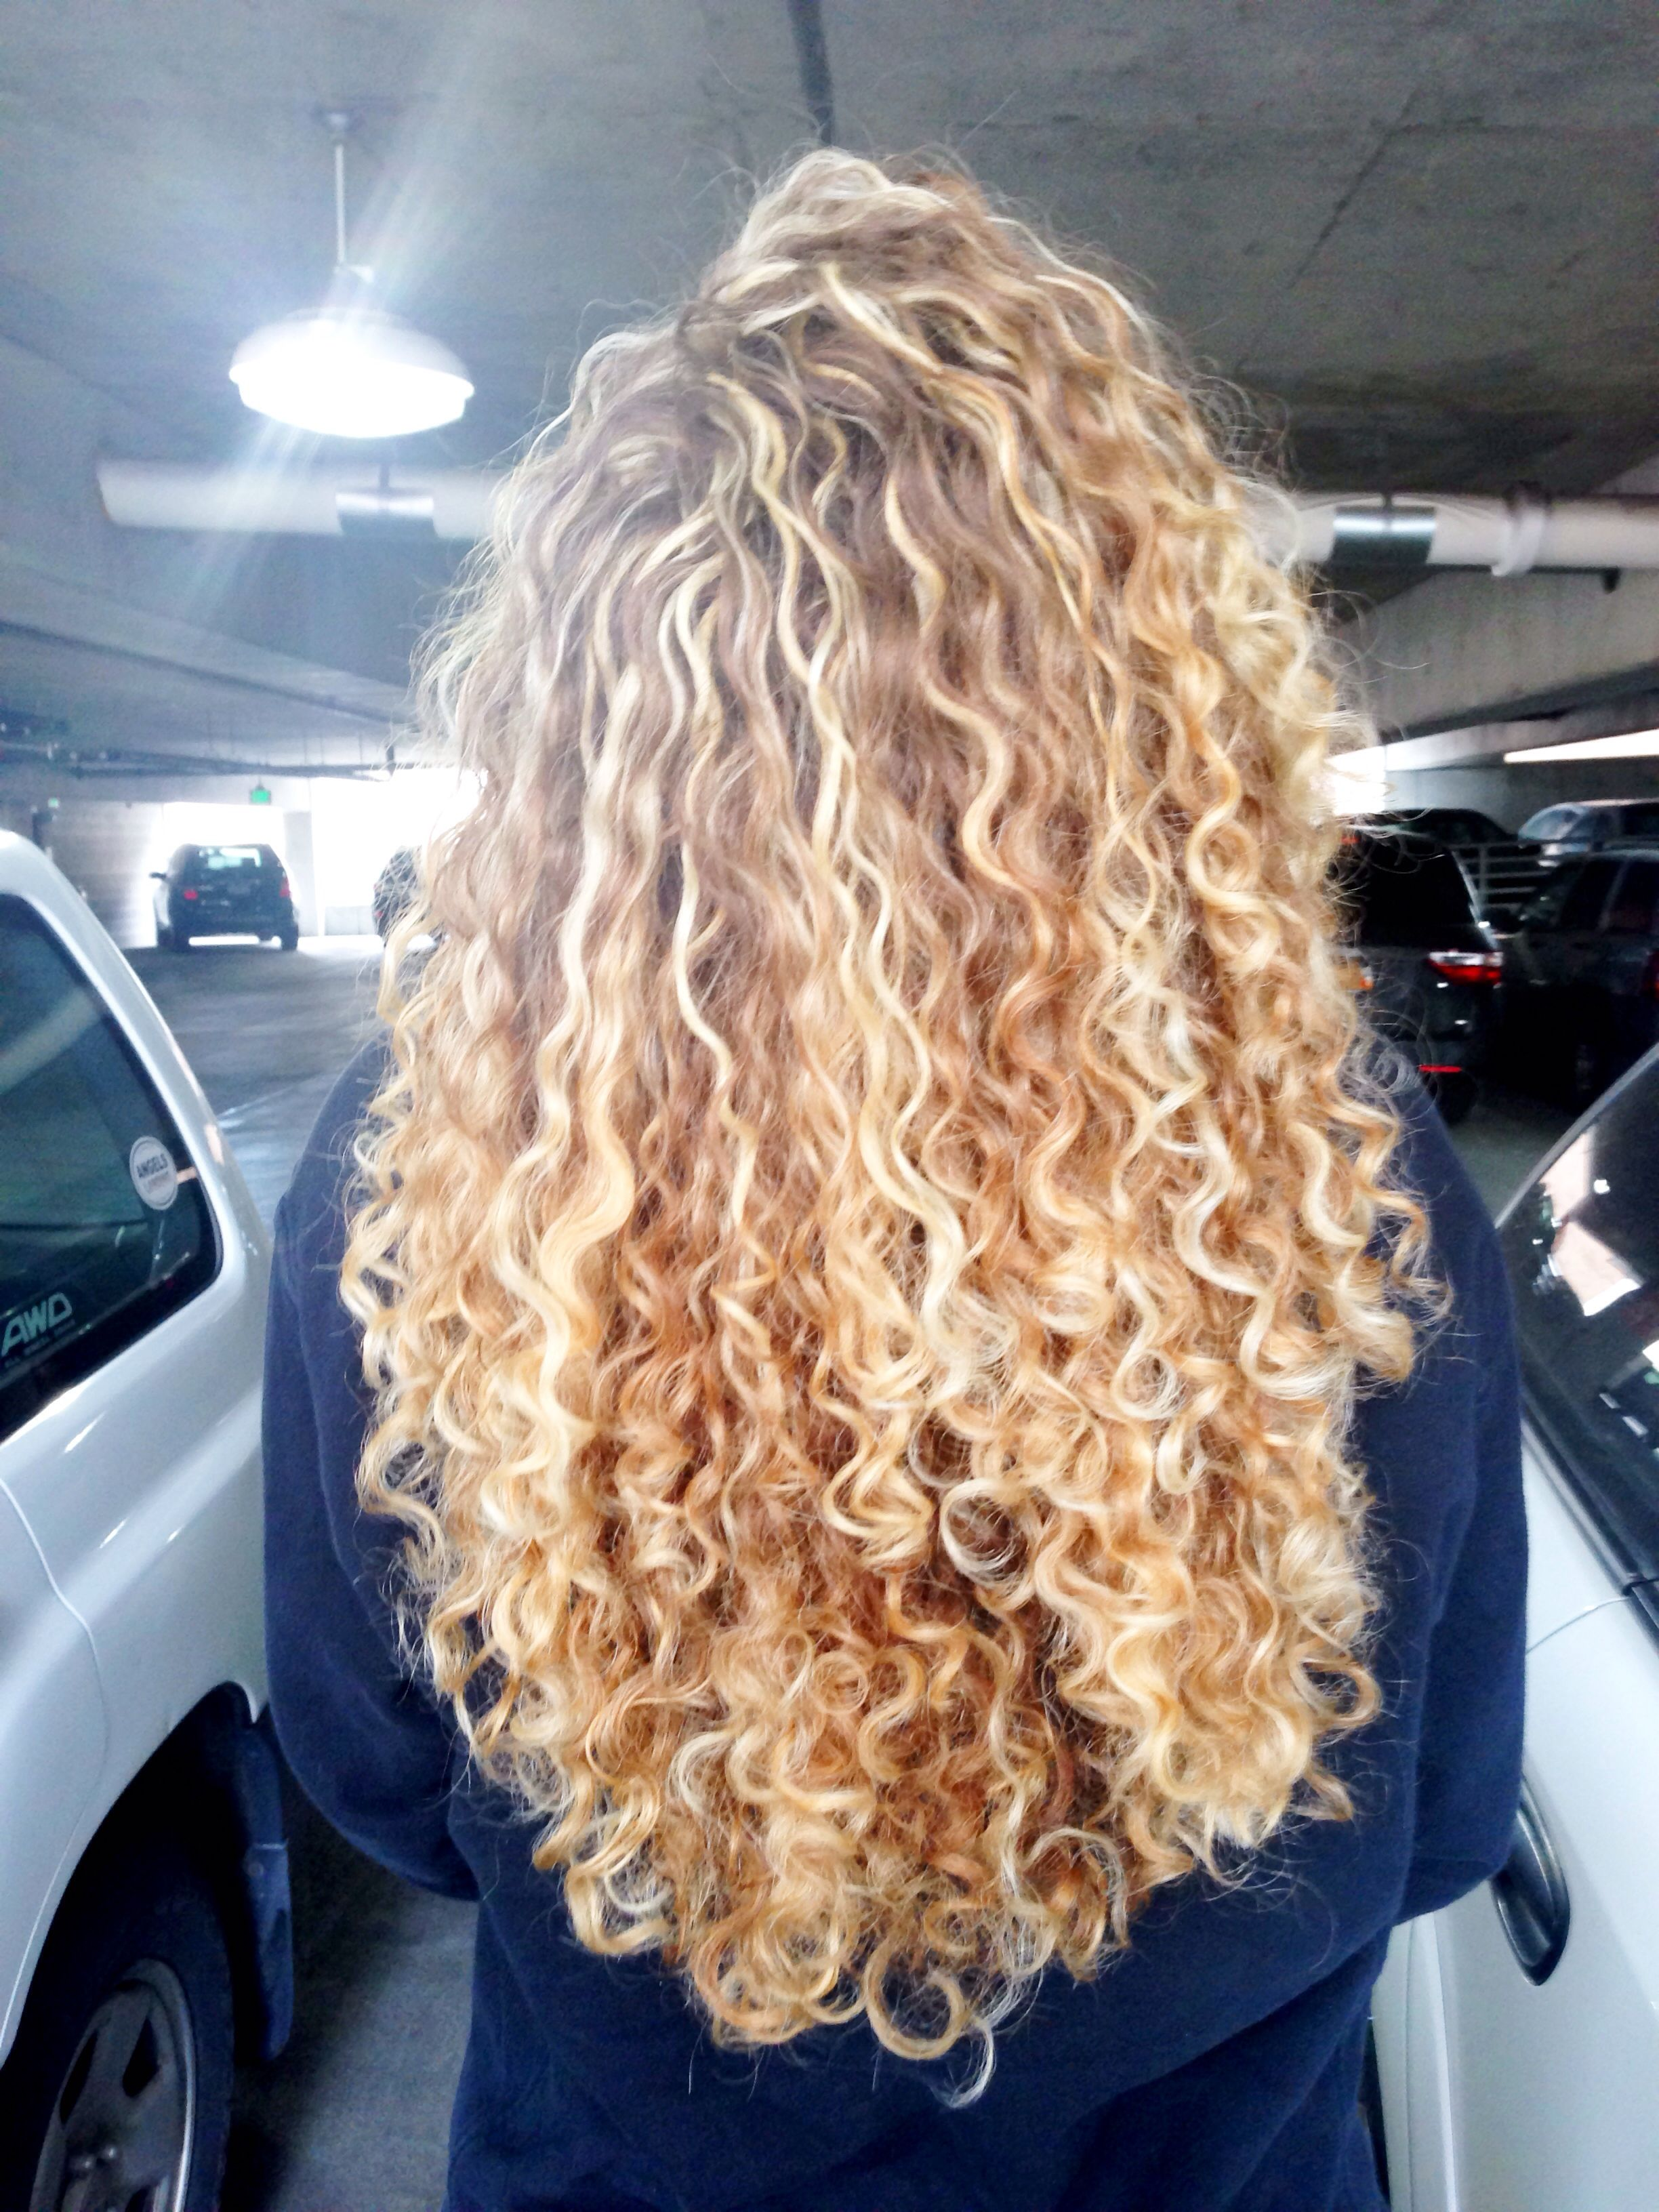 Thick naked blonde curly hair